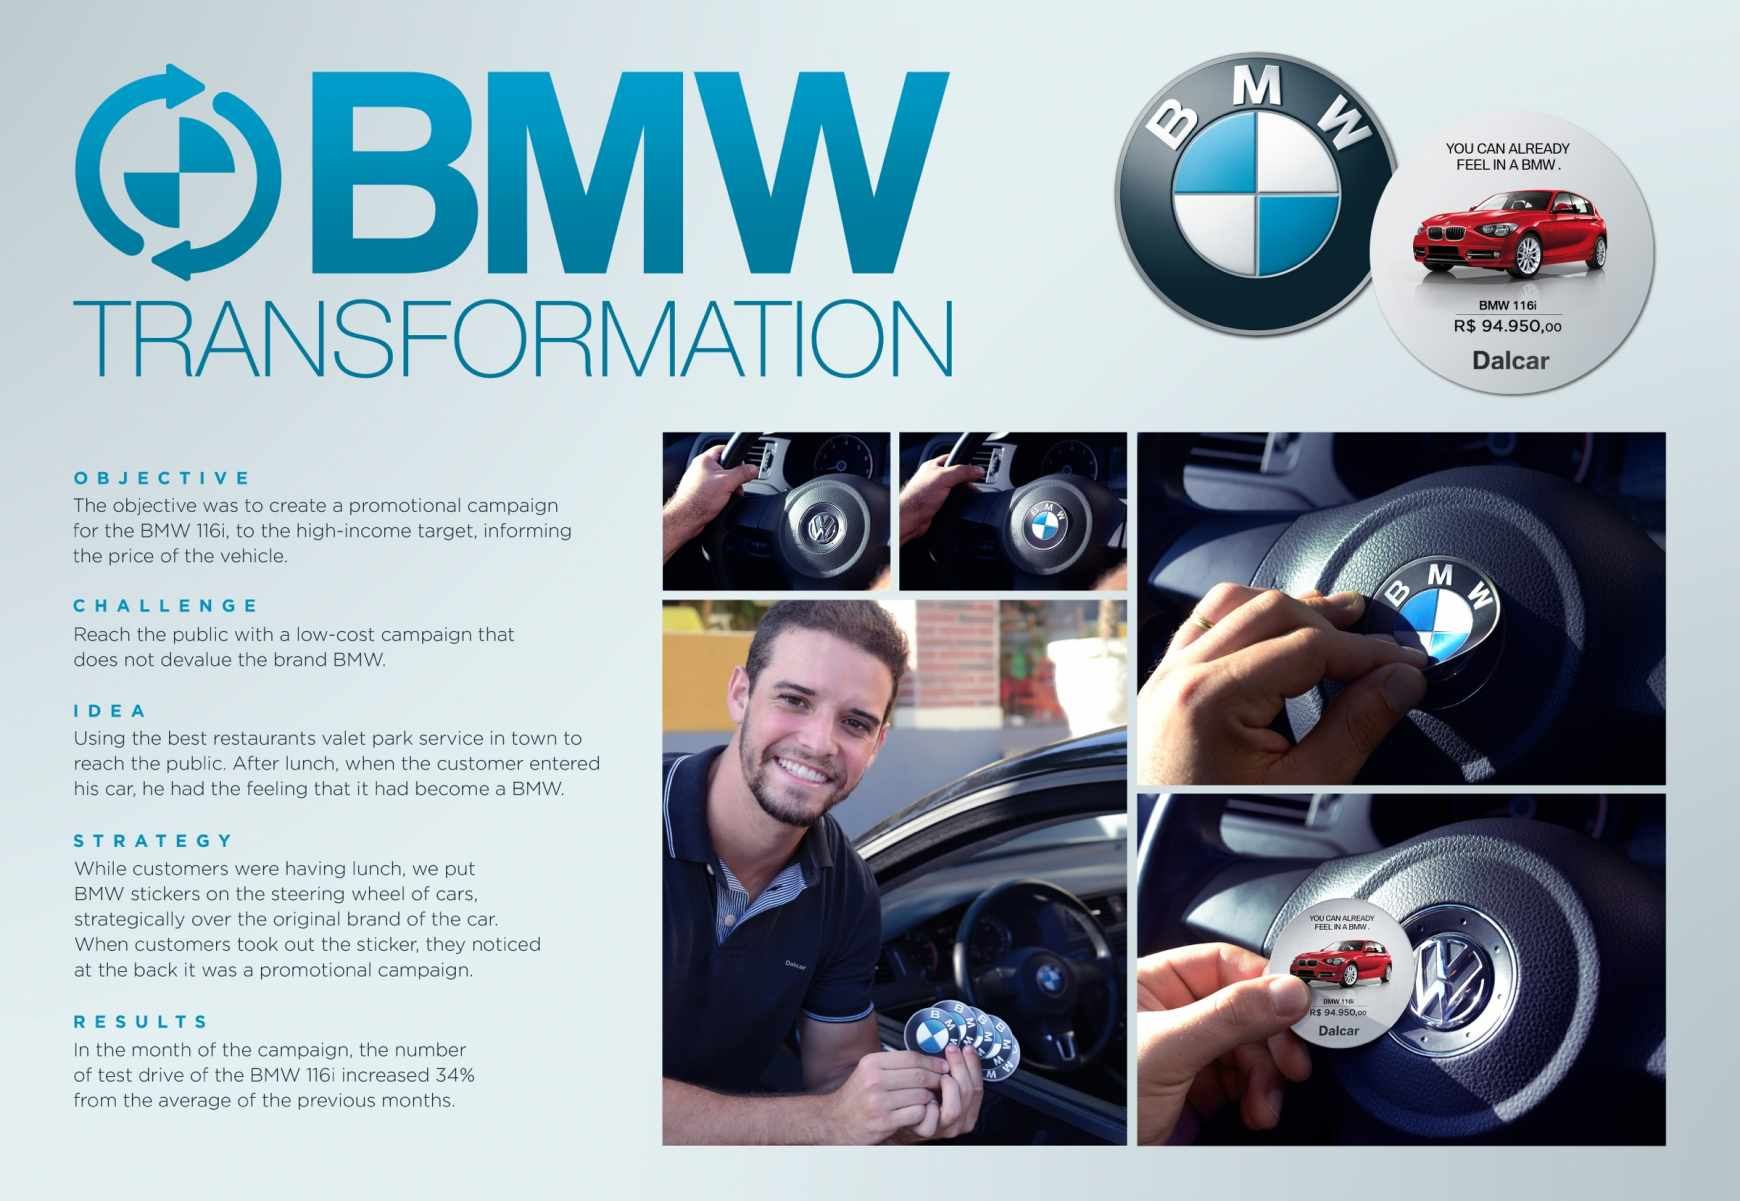 bmw_transformation_english_aotw.jpg